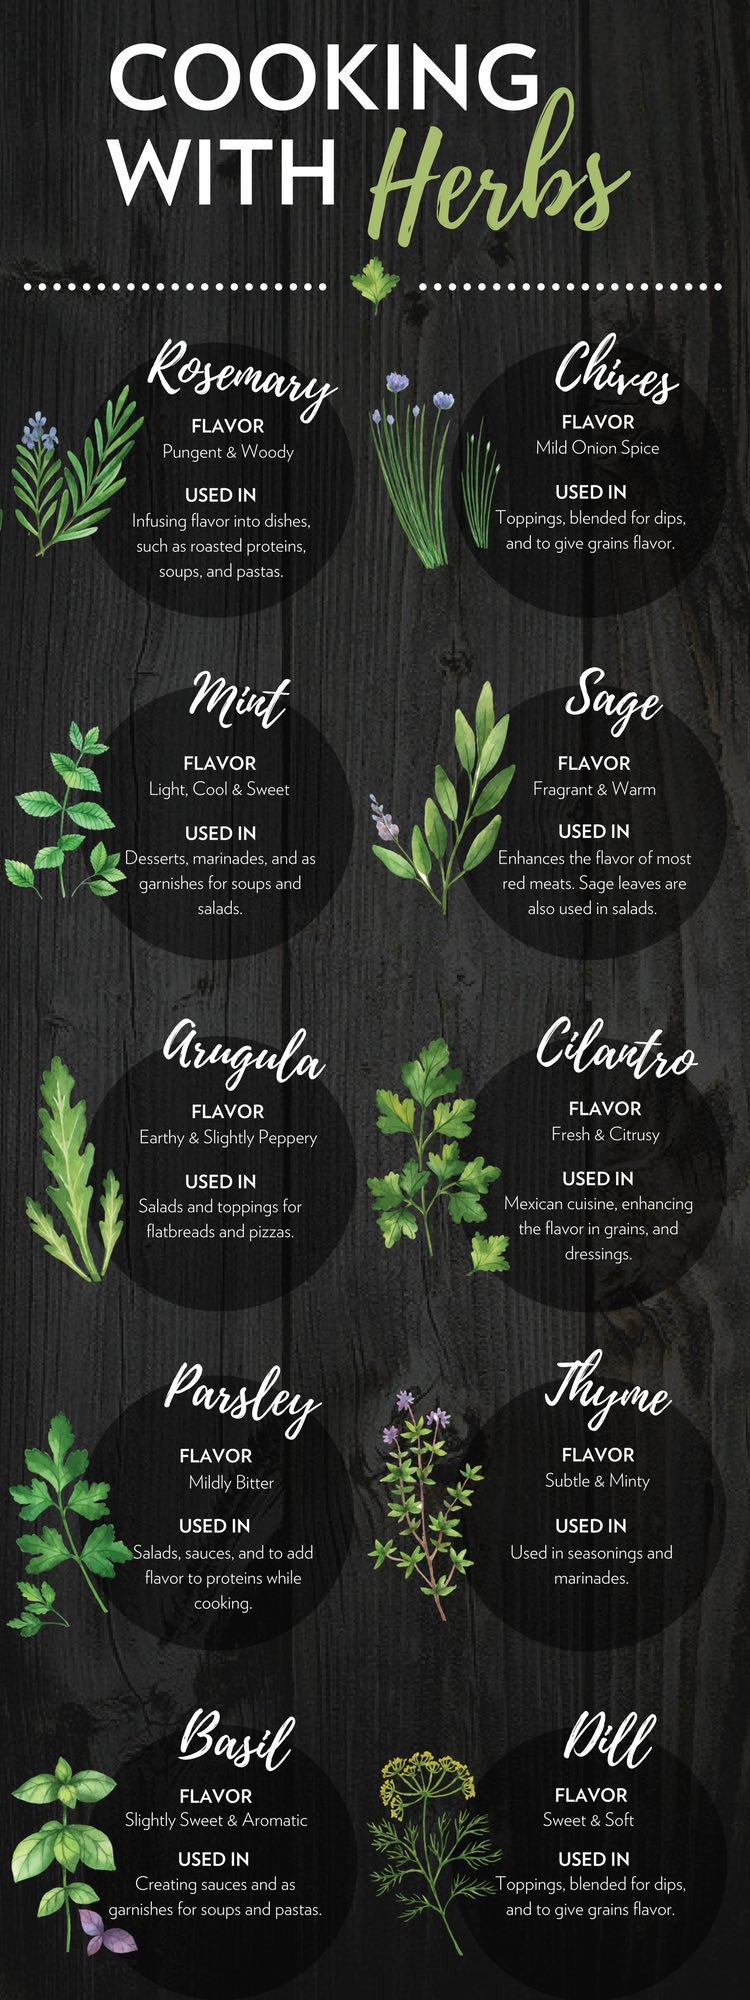 Cooking with Herbs | A Beginner's Guide